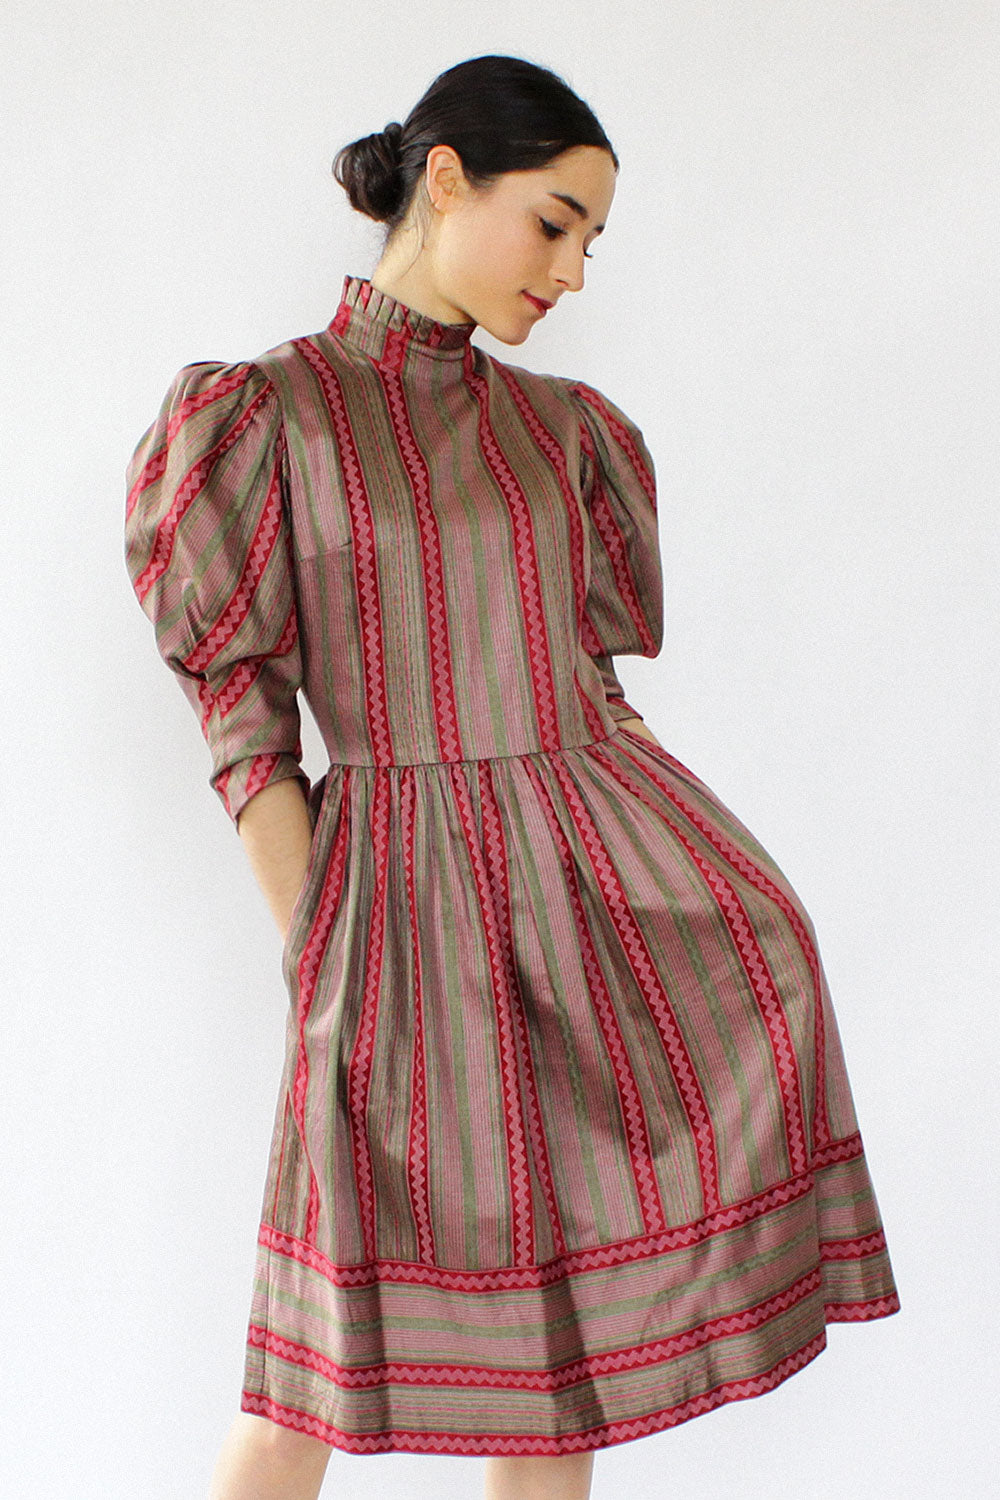 Belle France Society Dress S